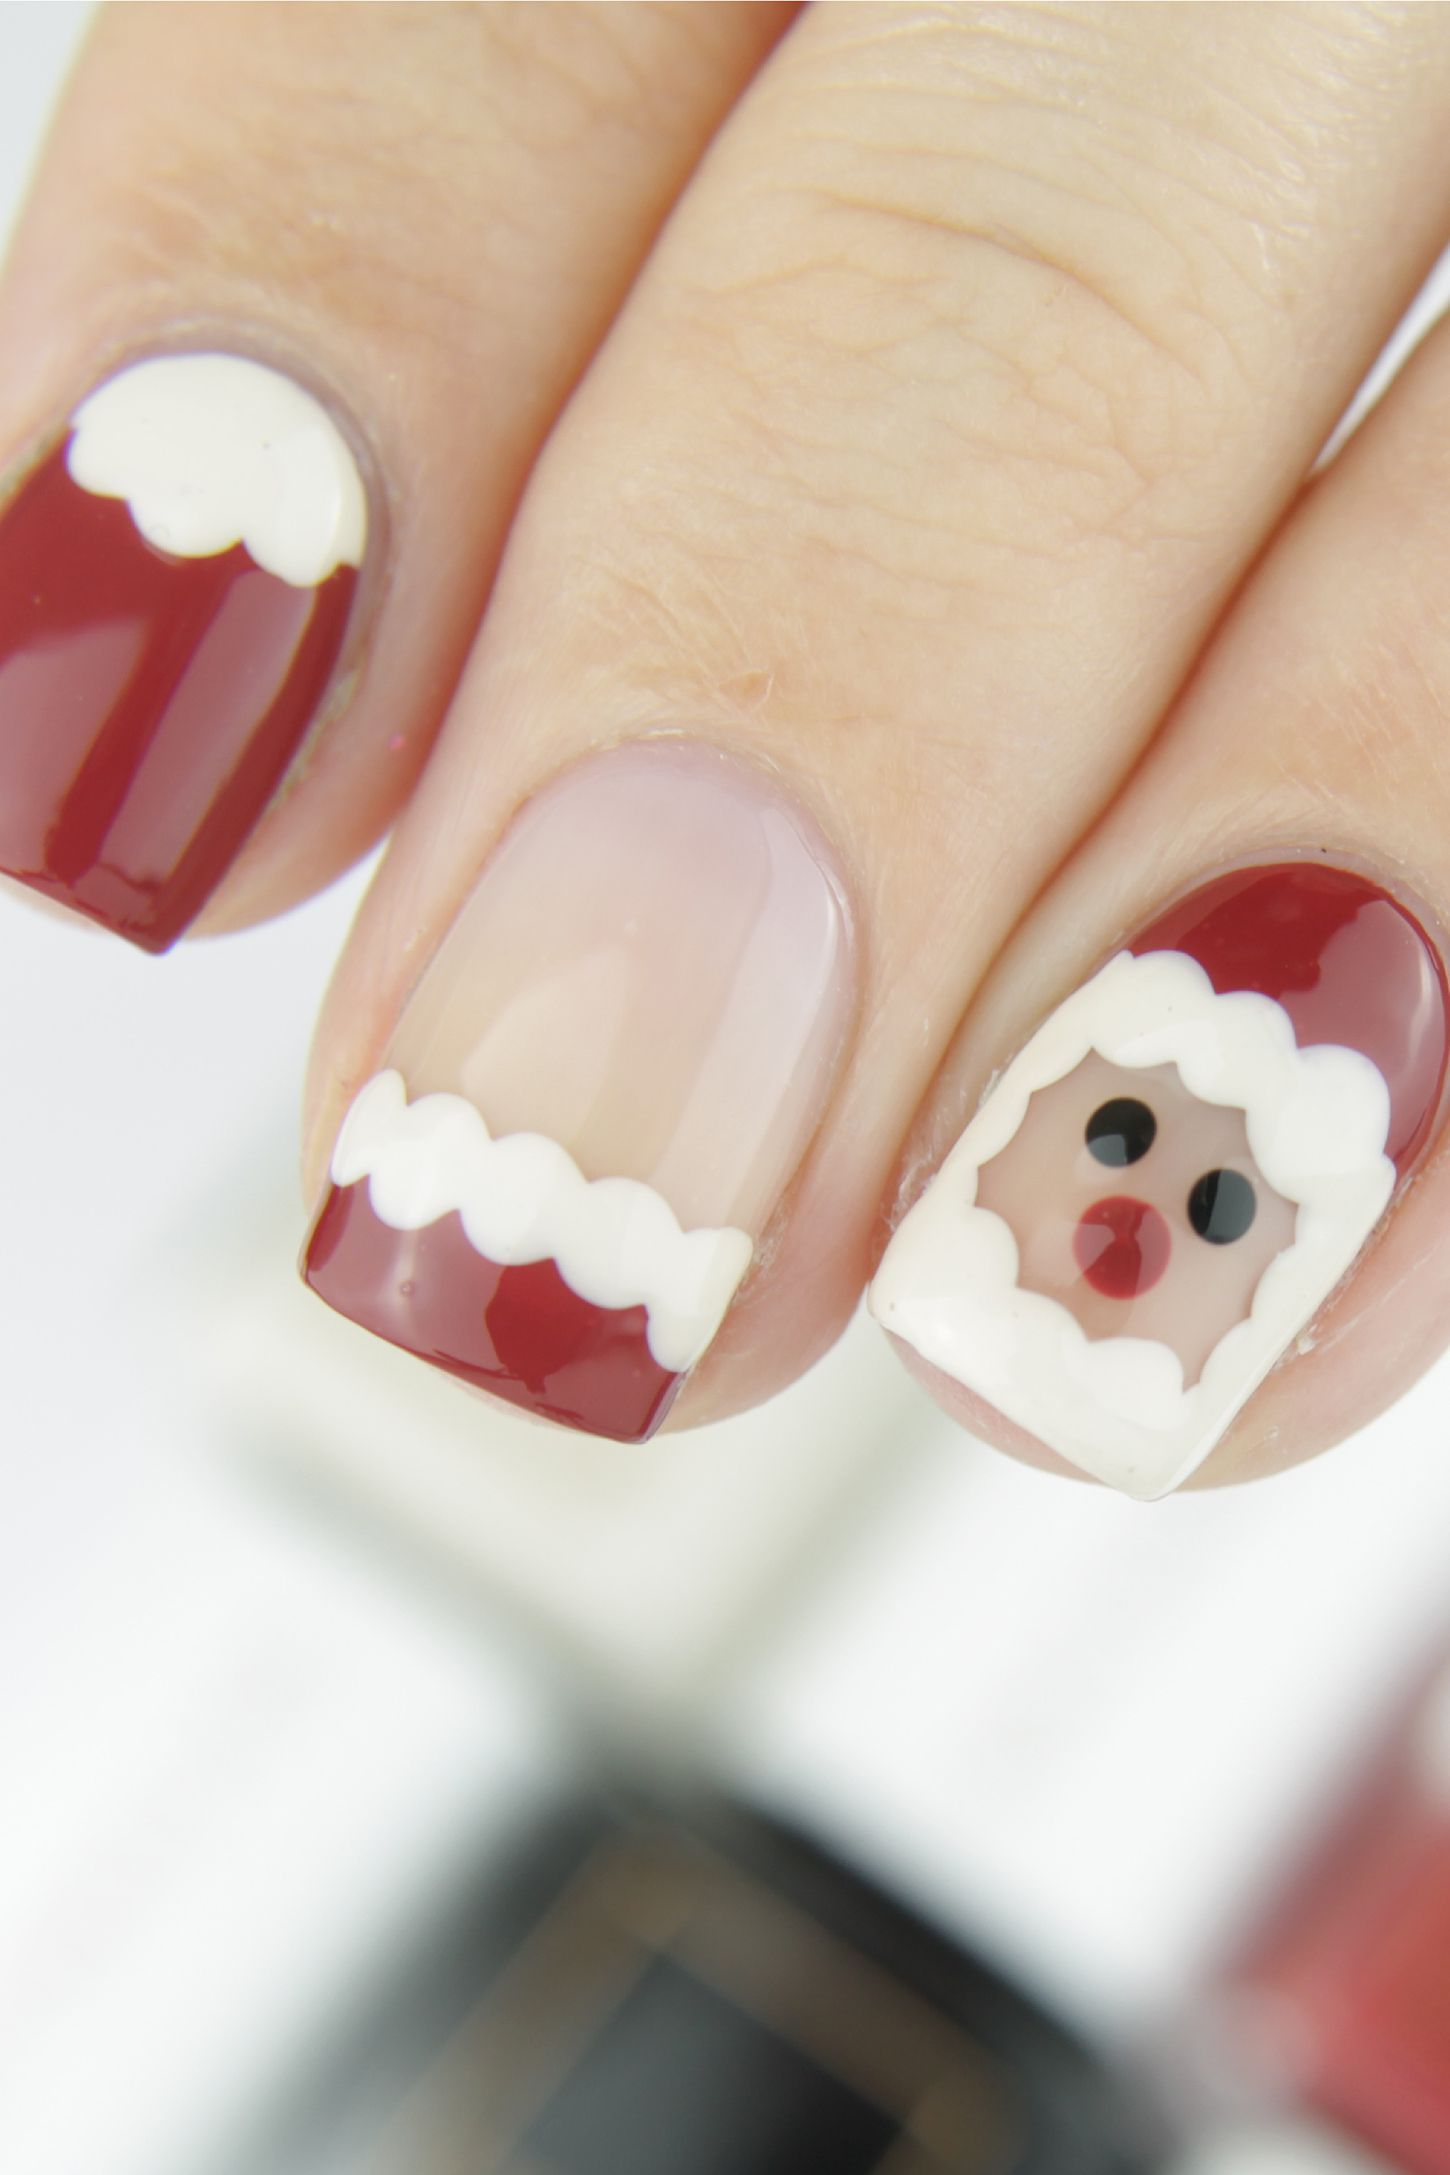 Discussion on this topic: Christmas Nail Art Ideas FromPinterest, christmas-nail-art-ideas-frompinterest/